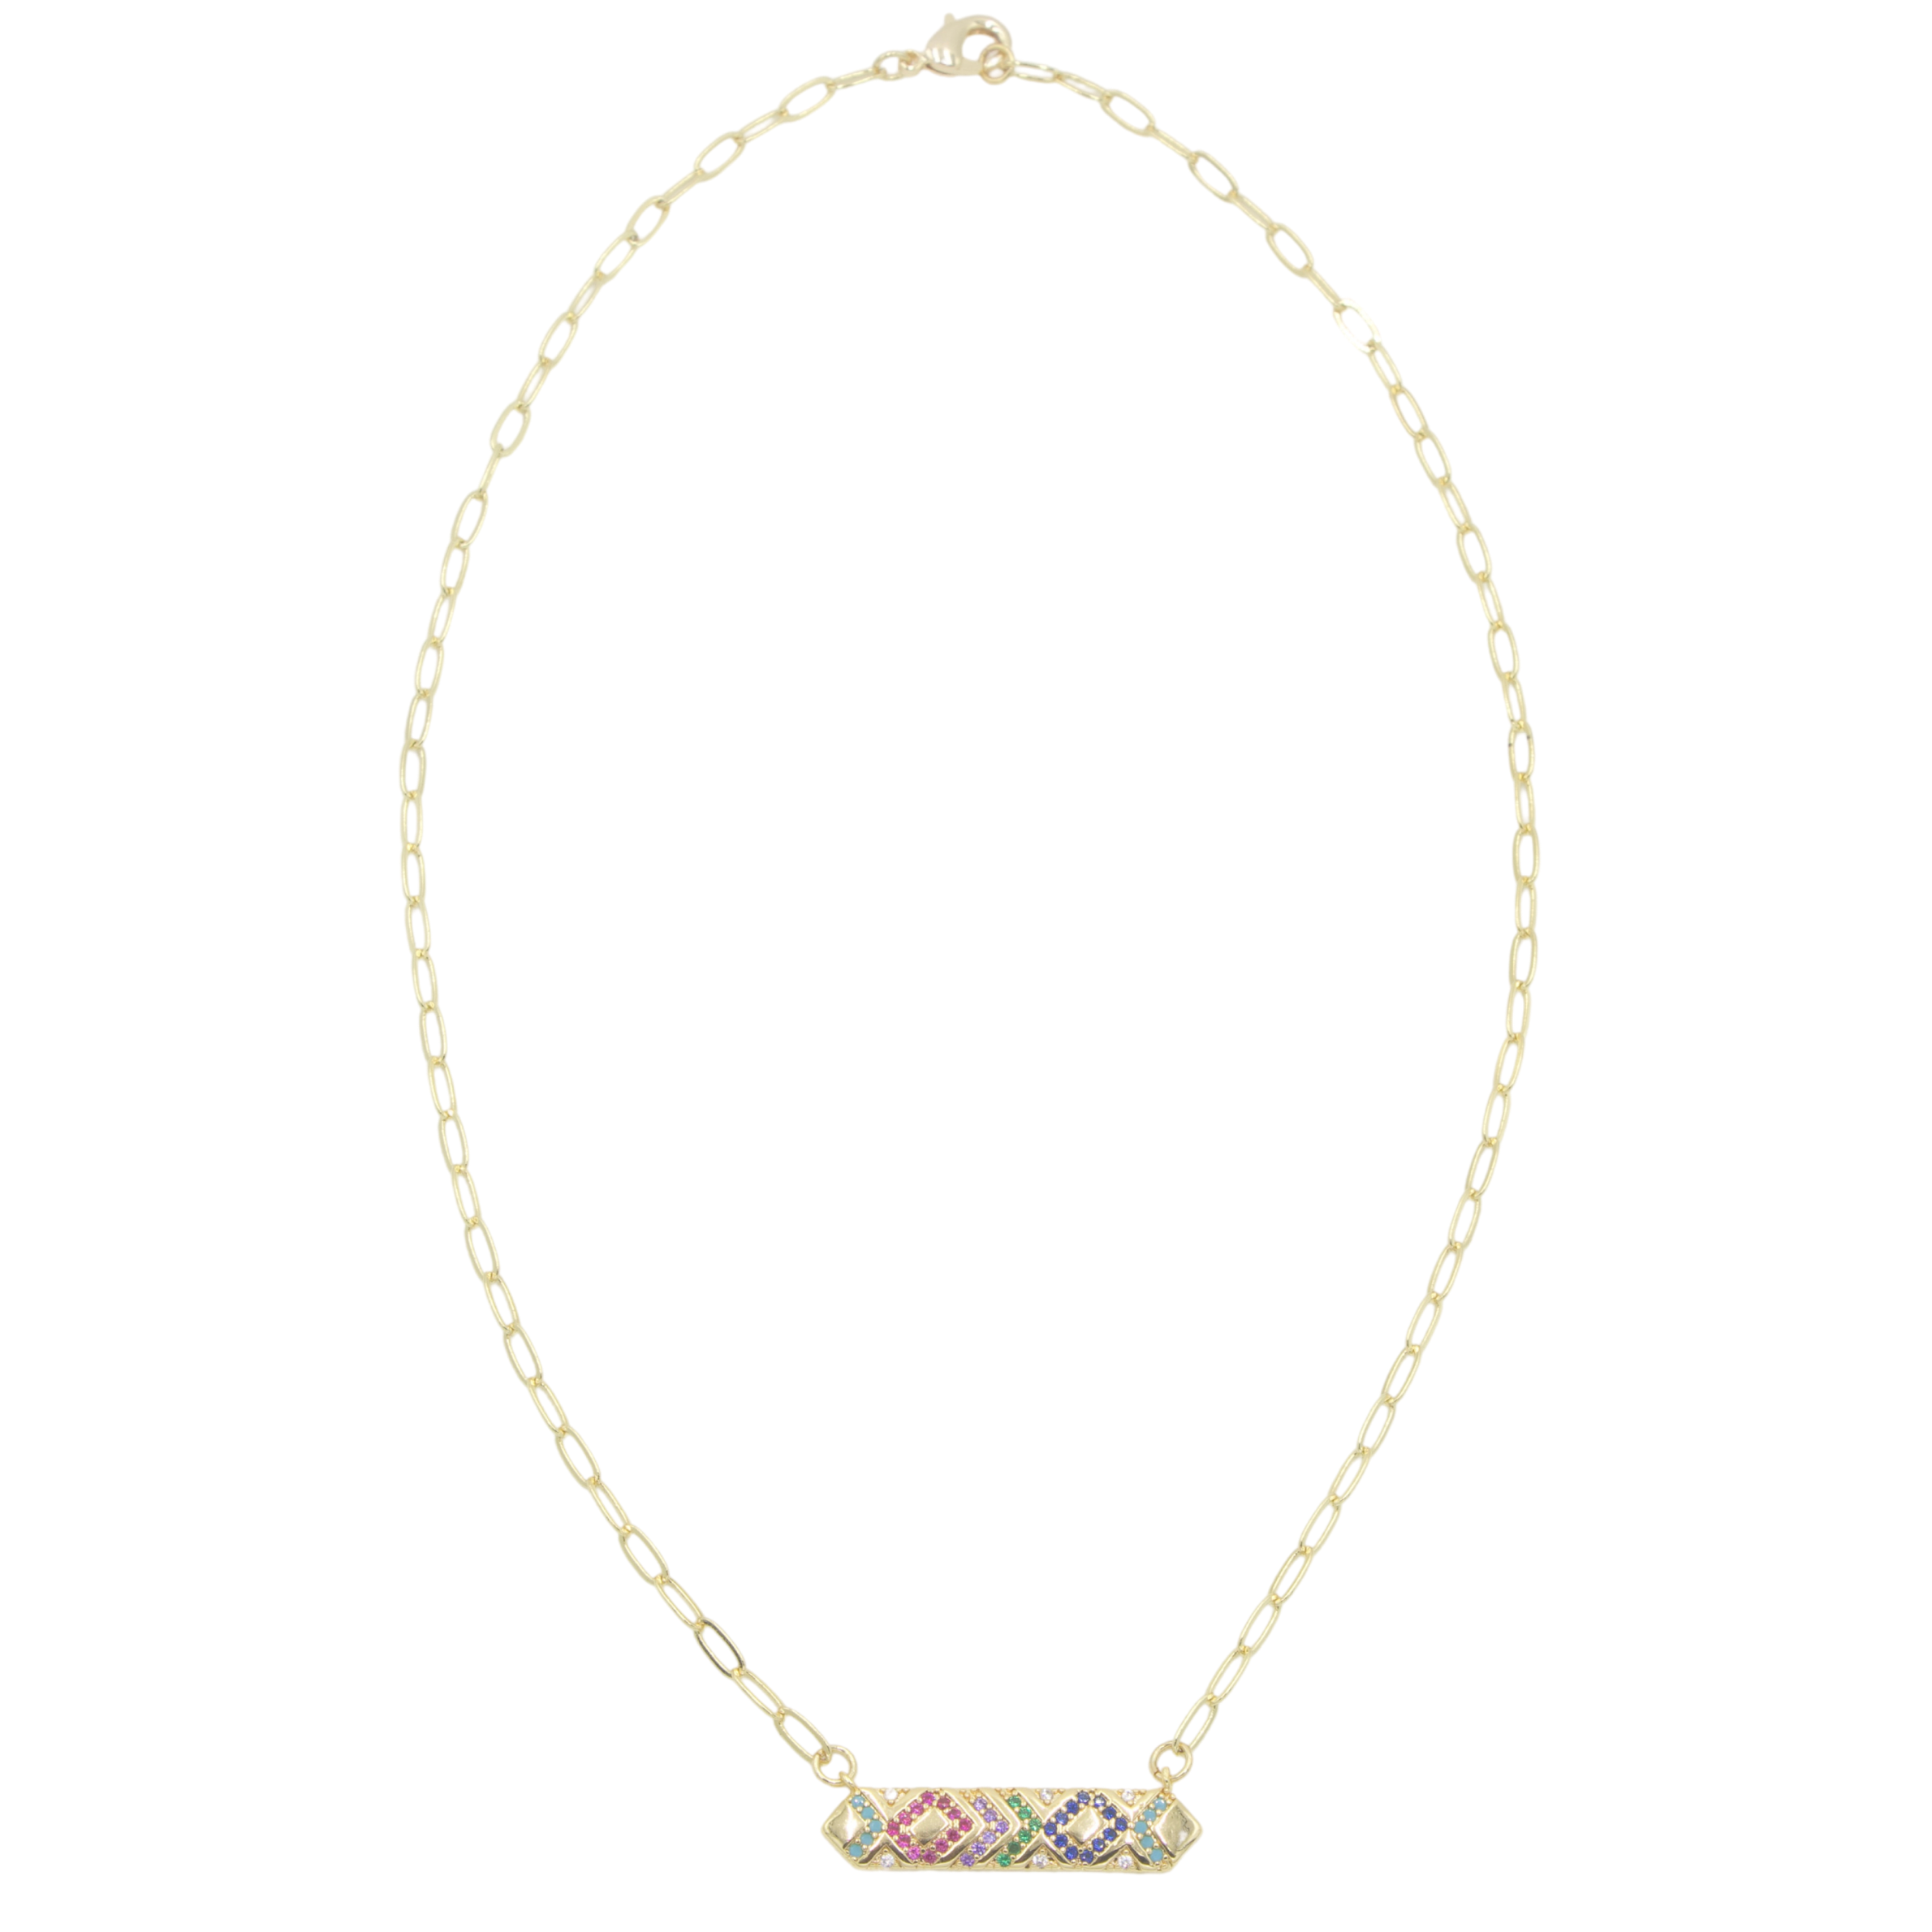 AW Boutique's Multicolour Crystal Bar Pendant on a 16 inch fine paperclip chain.  The pendant is filled with bright, sparkling cubic zirconia multicoloured crystals in a geometric pattern.